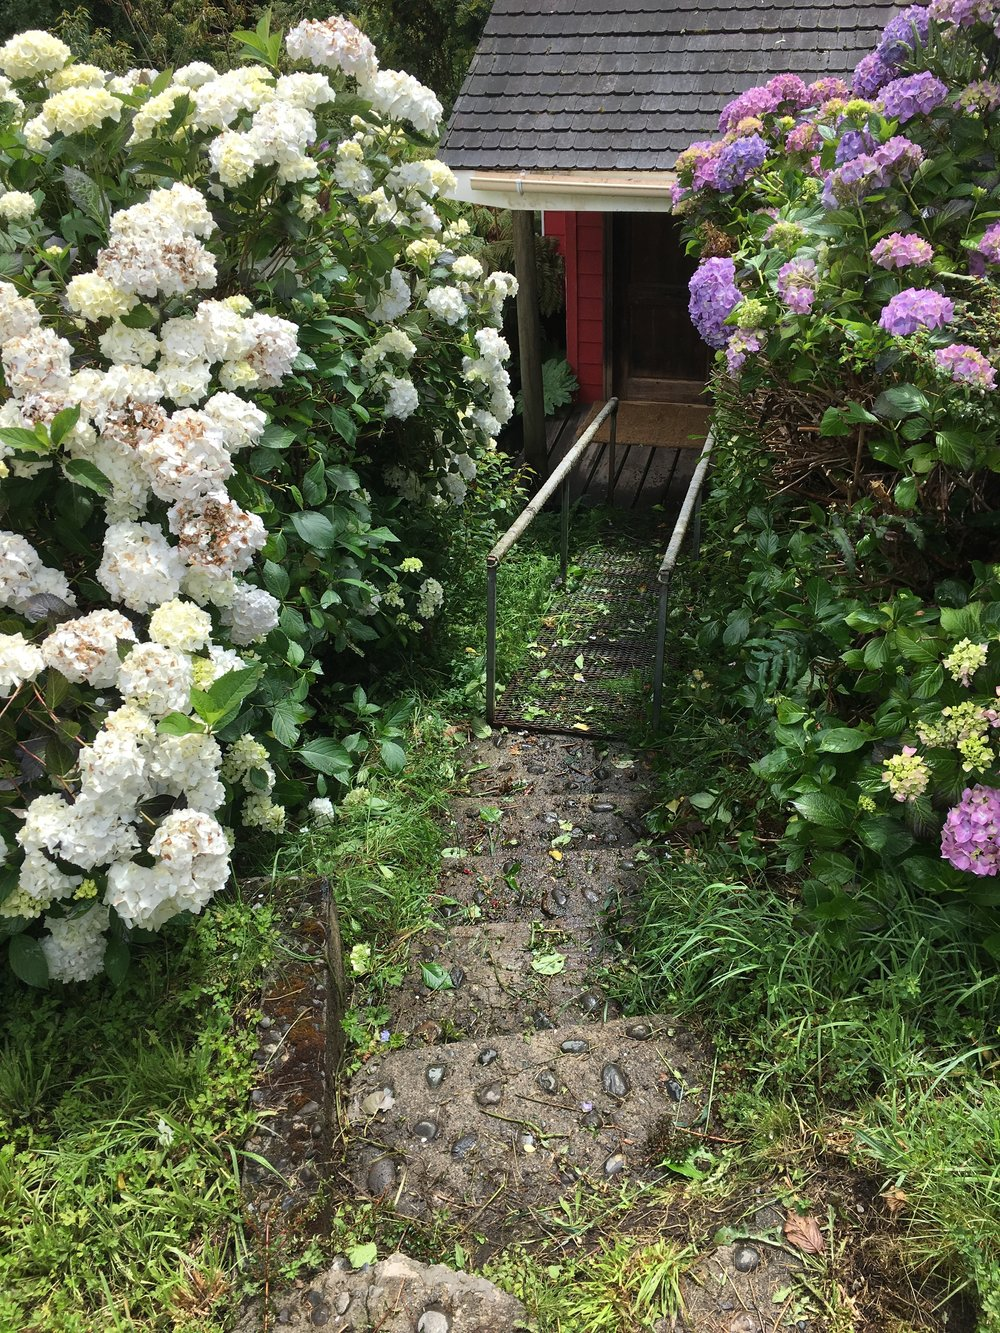 After trimming the hydrangeas.  Showing the path to the cabana.